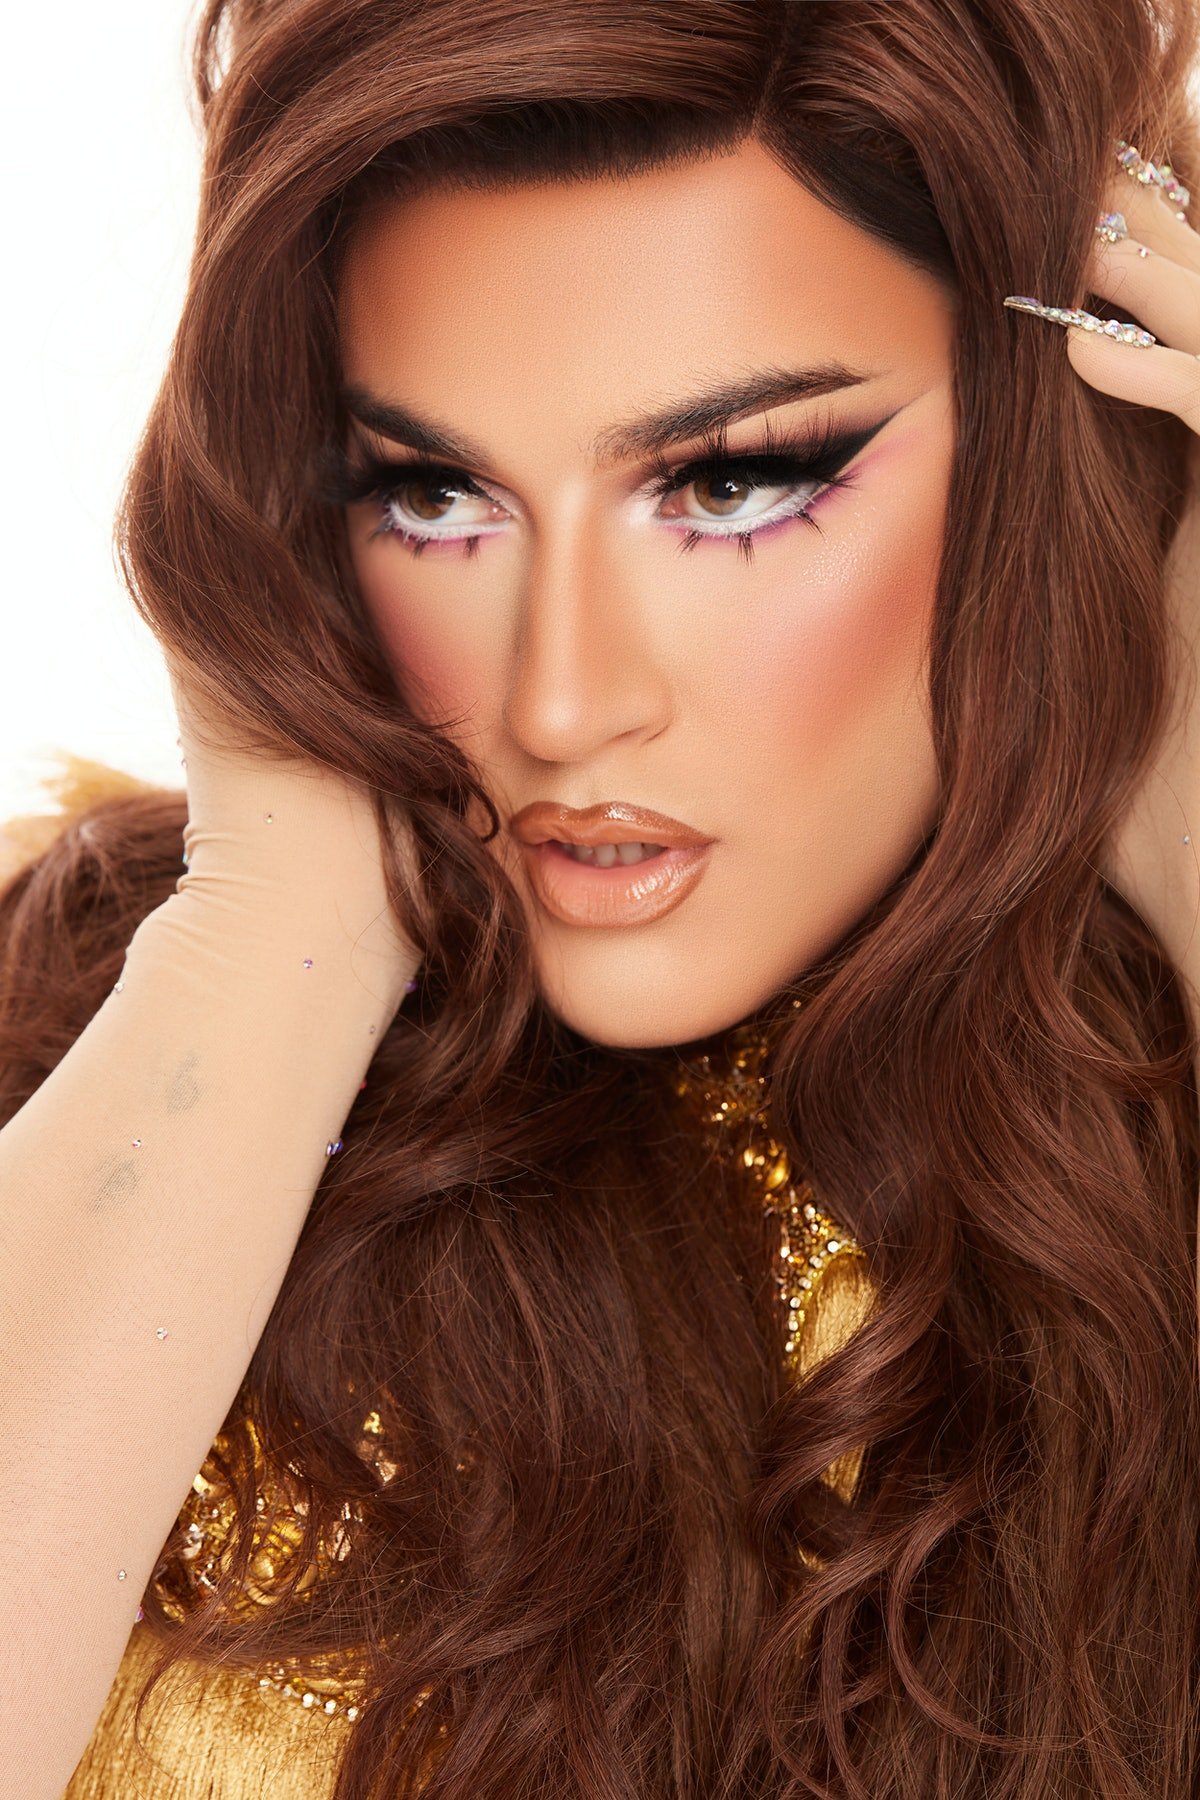 Manny Gutierrez, aka Manny MUA, poses in a gorgeous drag makeup look in promotional images for Lunar Beauty's new Life's A Drag Facelift palette.